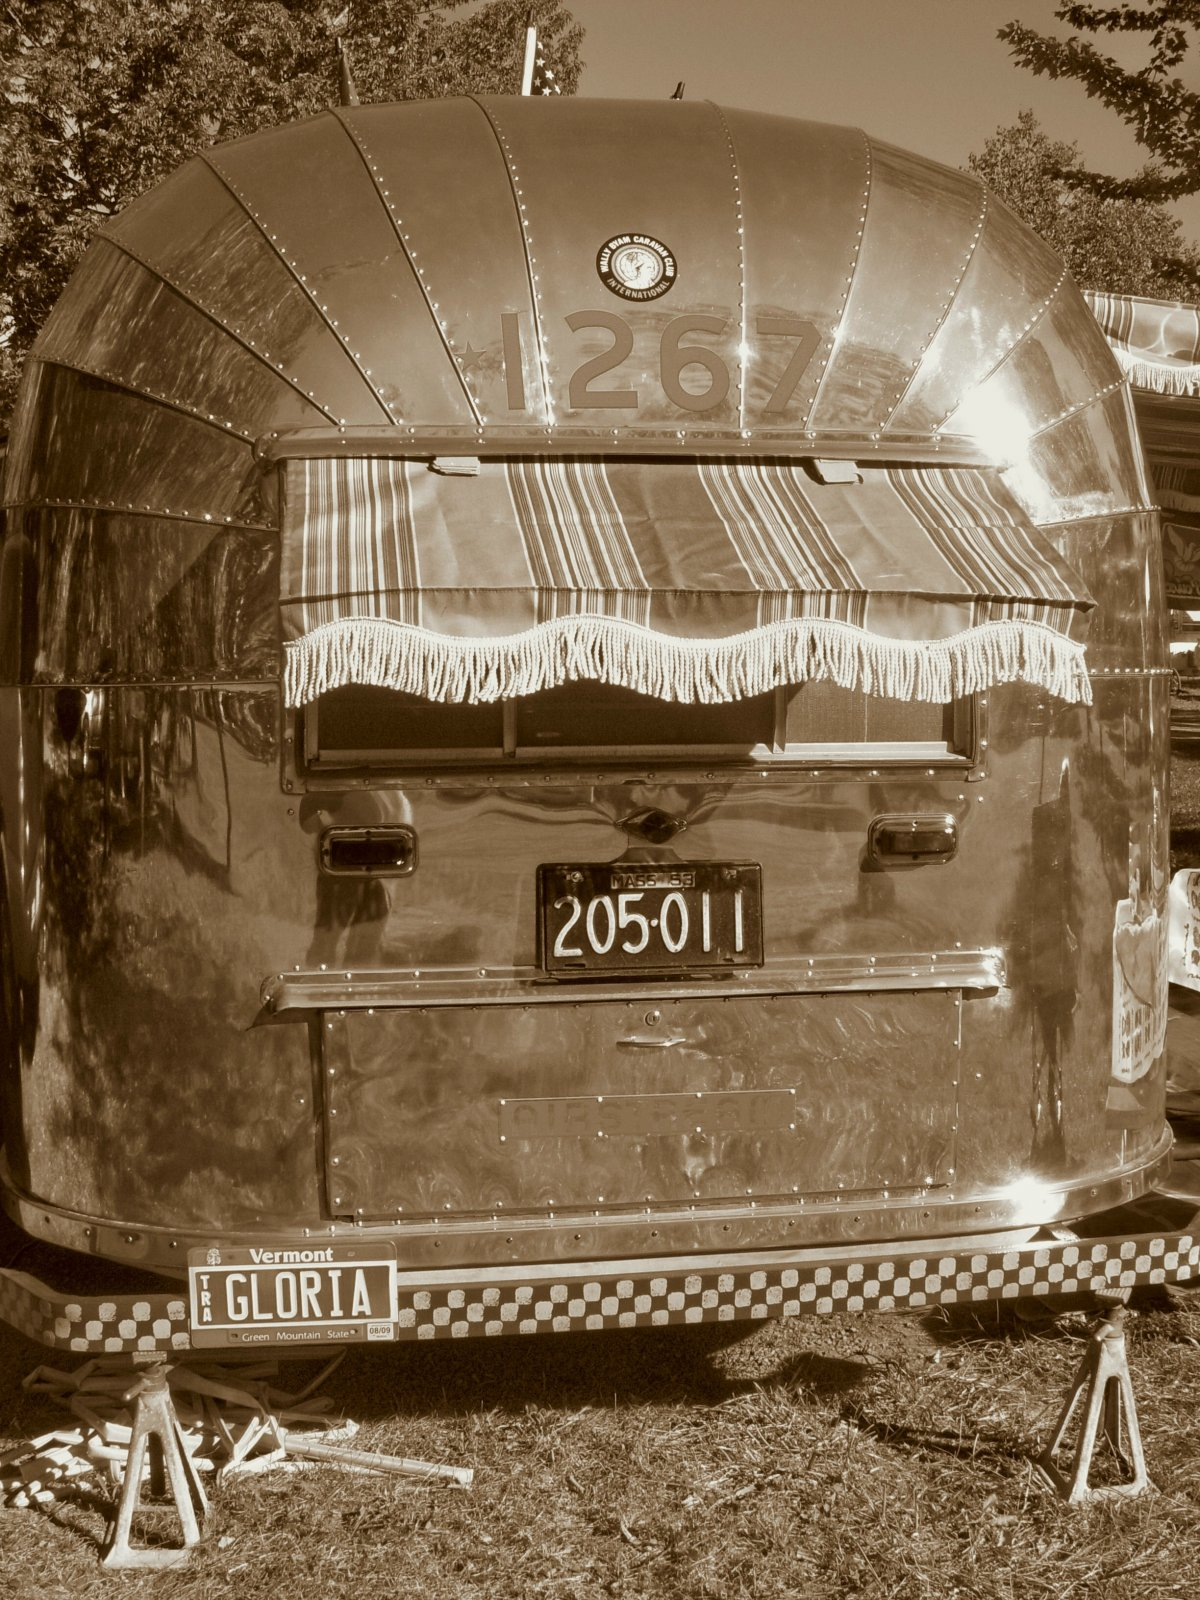 Click image for larger version  Name:back of 53 sepia.jpg Views:76 Size:445.8 KB ID:113660